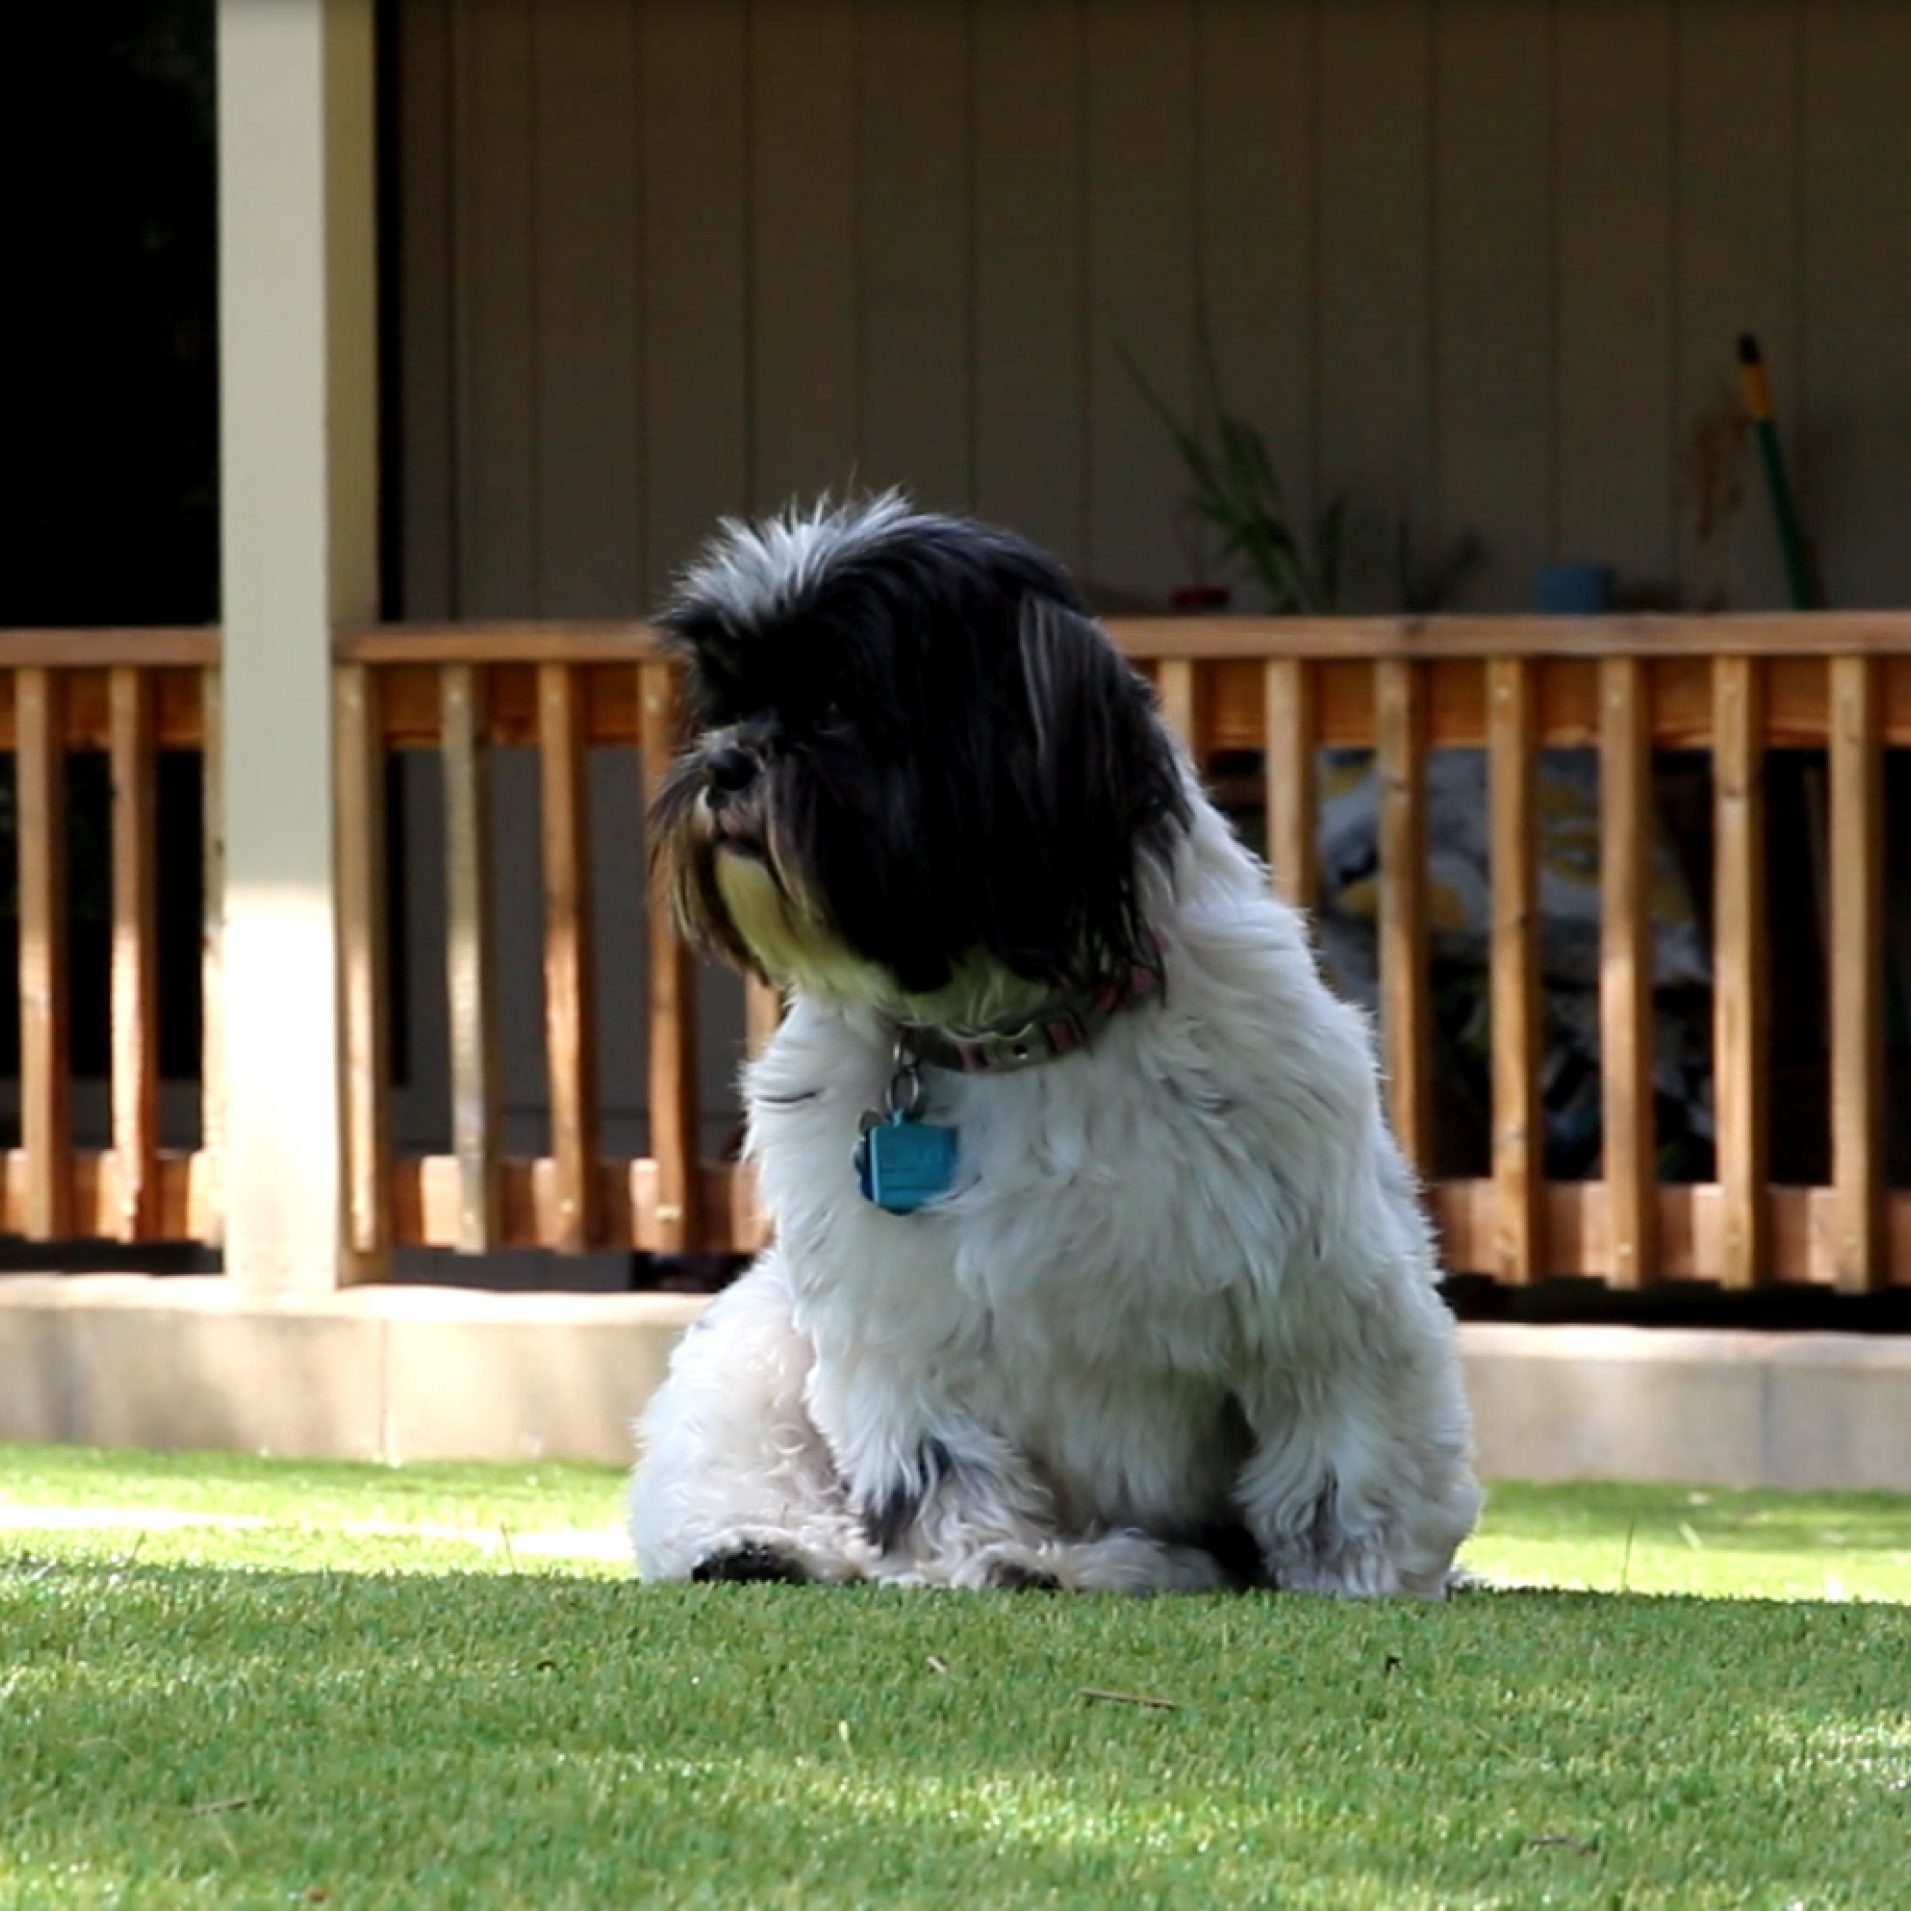 Small white black puppy dog with a tag sitting on synthetic lawn patio deck.